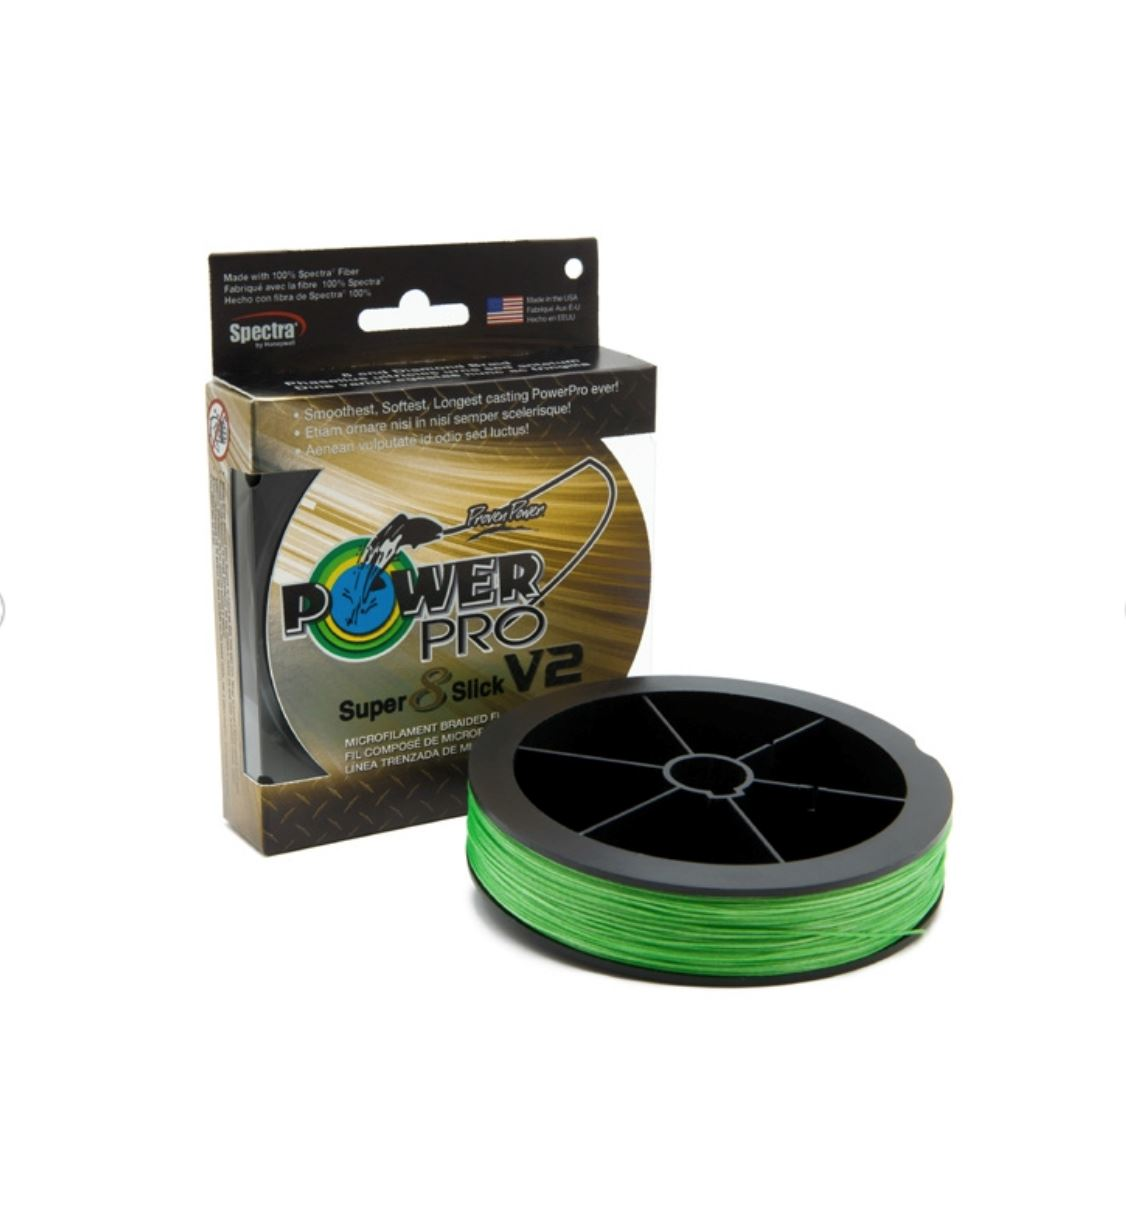 Power Pro Super 8 Slick V2 Braided Line - AQUA GREEN Braided Line Power Pro